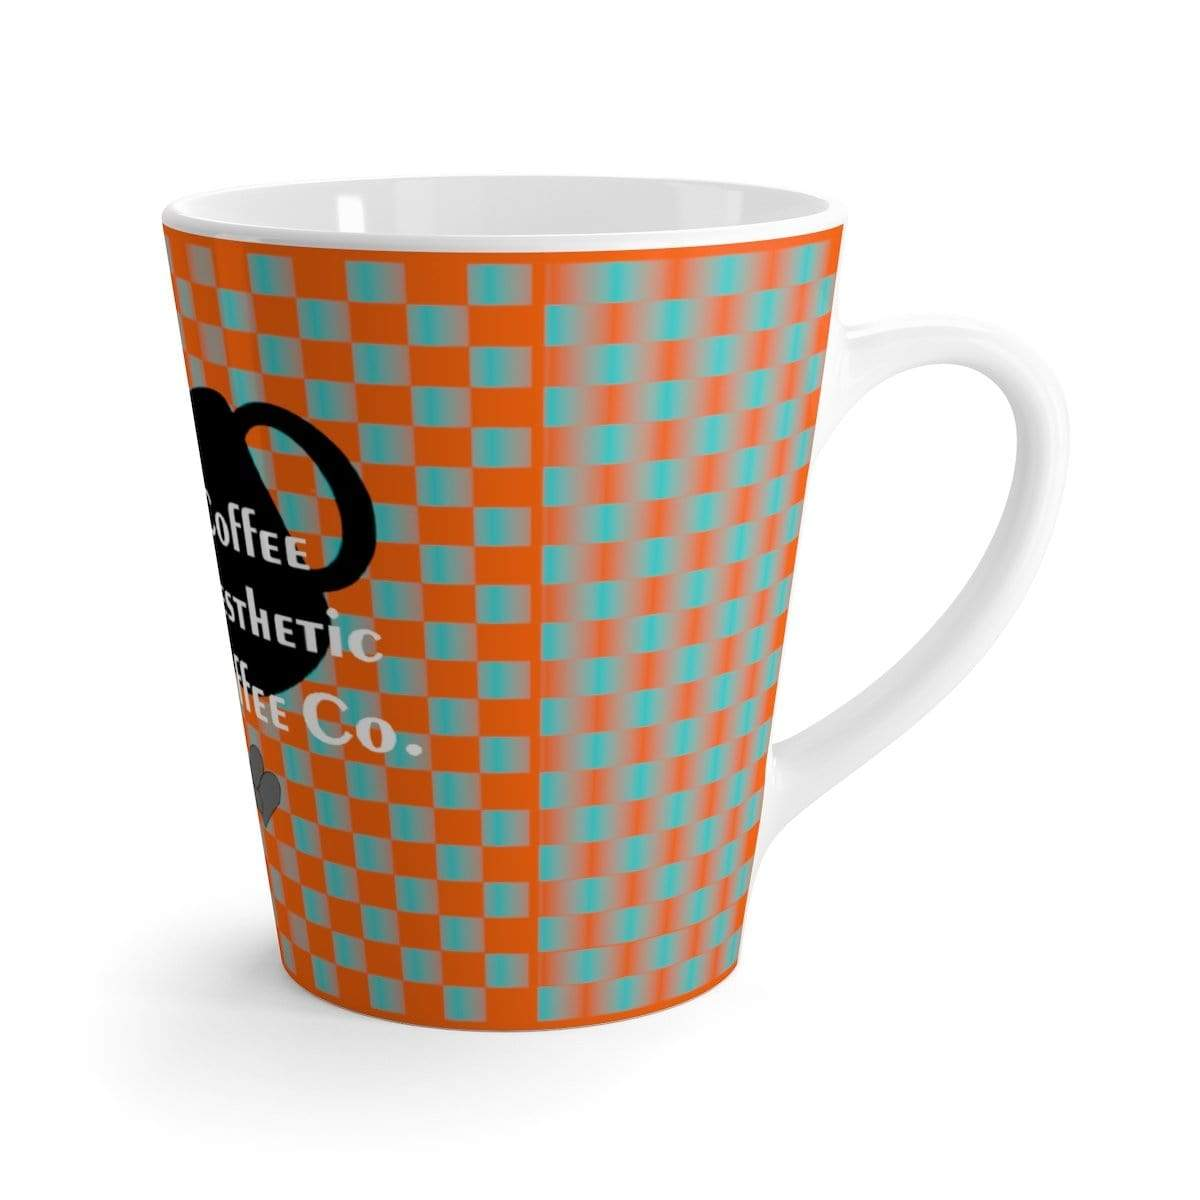 Plumskum Mug 12oz Coffee-Aesthetic.com - Big Bright Blue Grid Latte mug